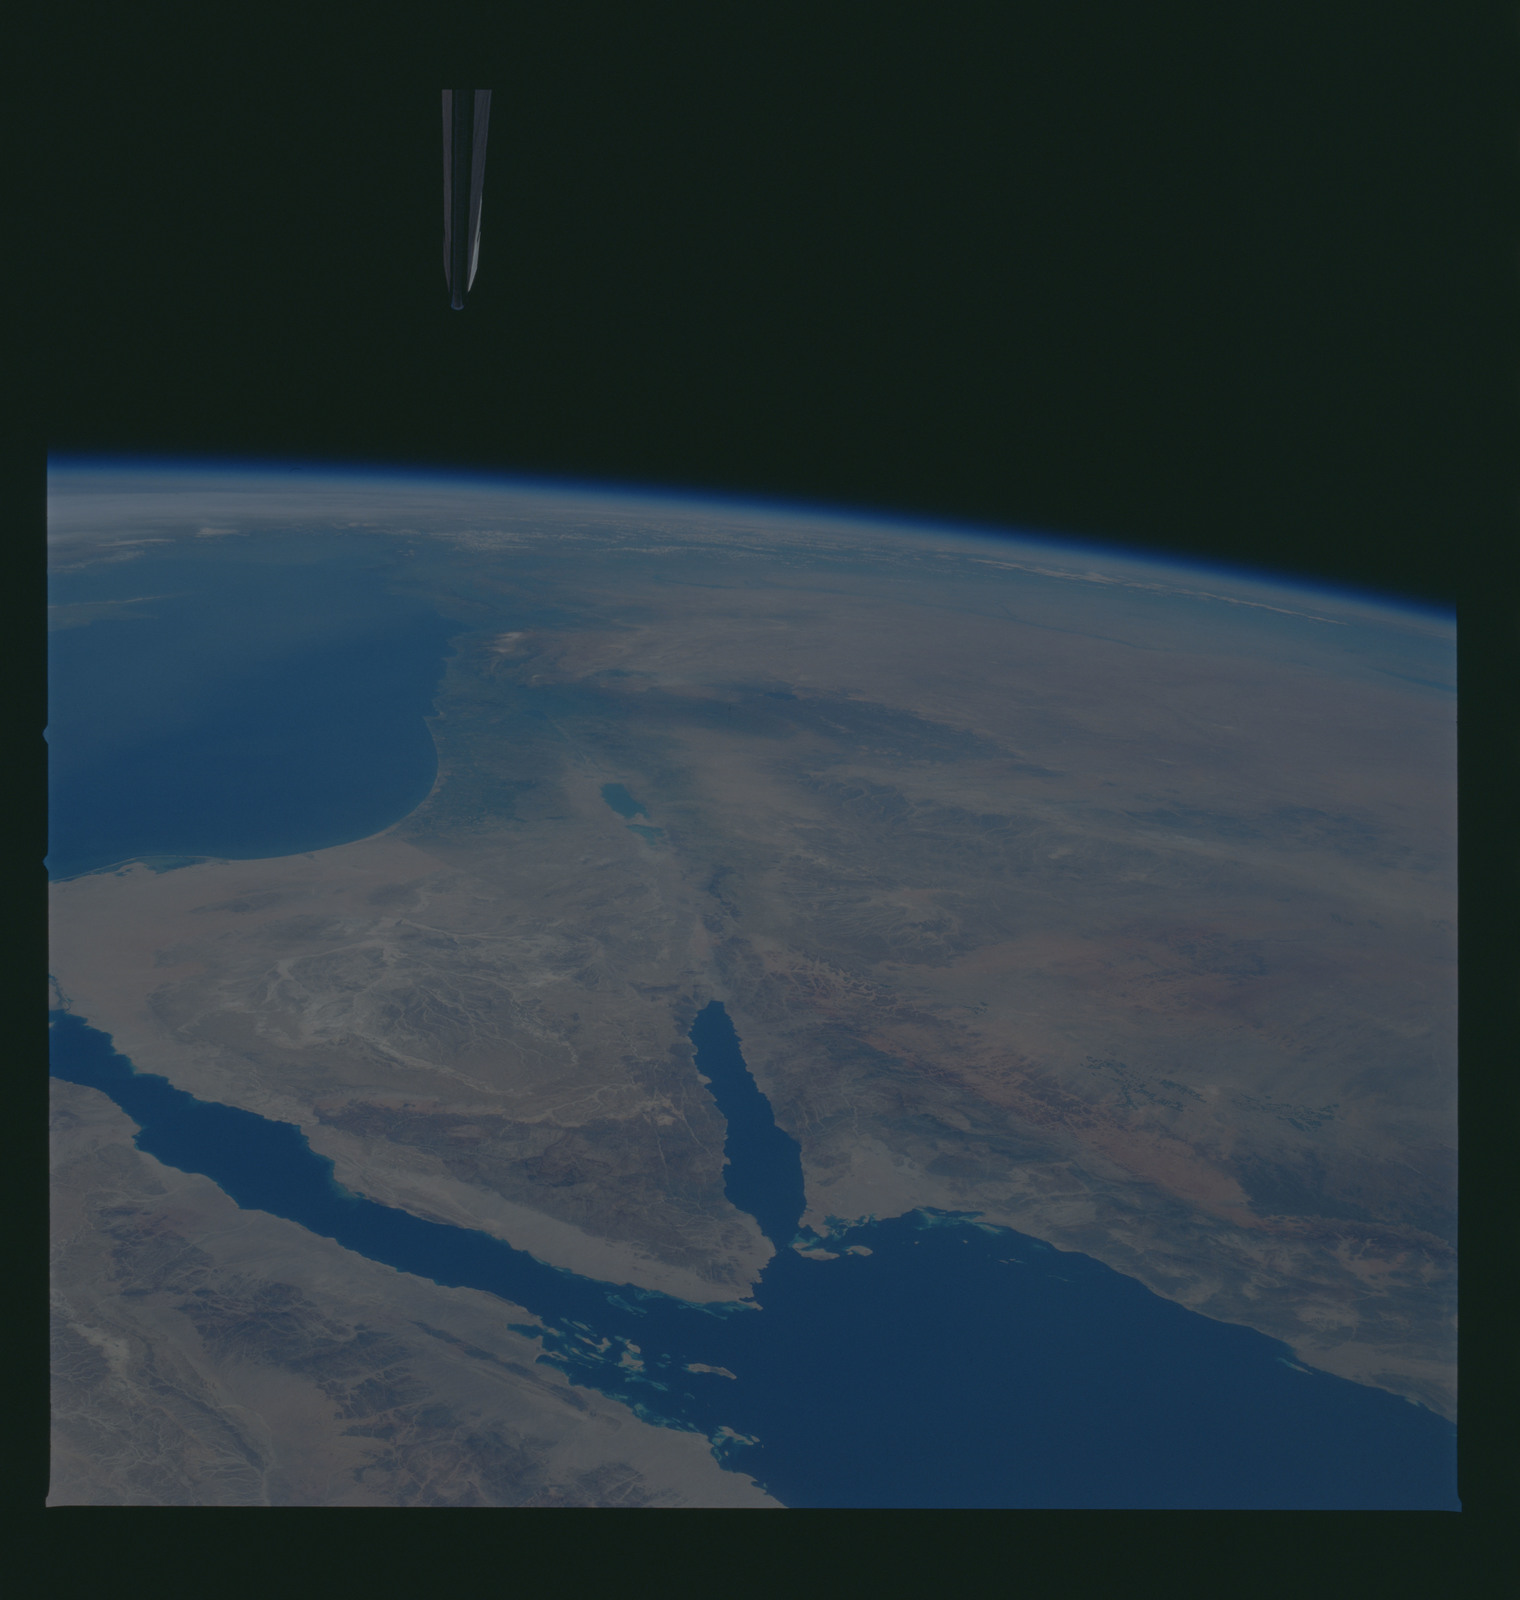 S37-94-074 - STS-037 - Earth observations taken from OV-104 during STS-37 mission